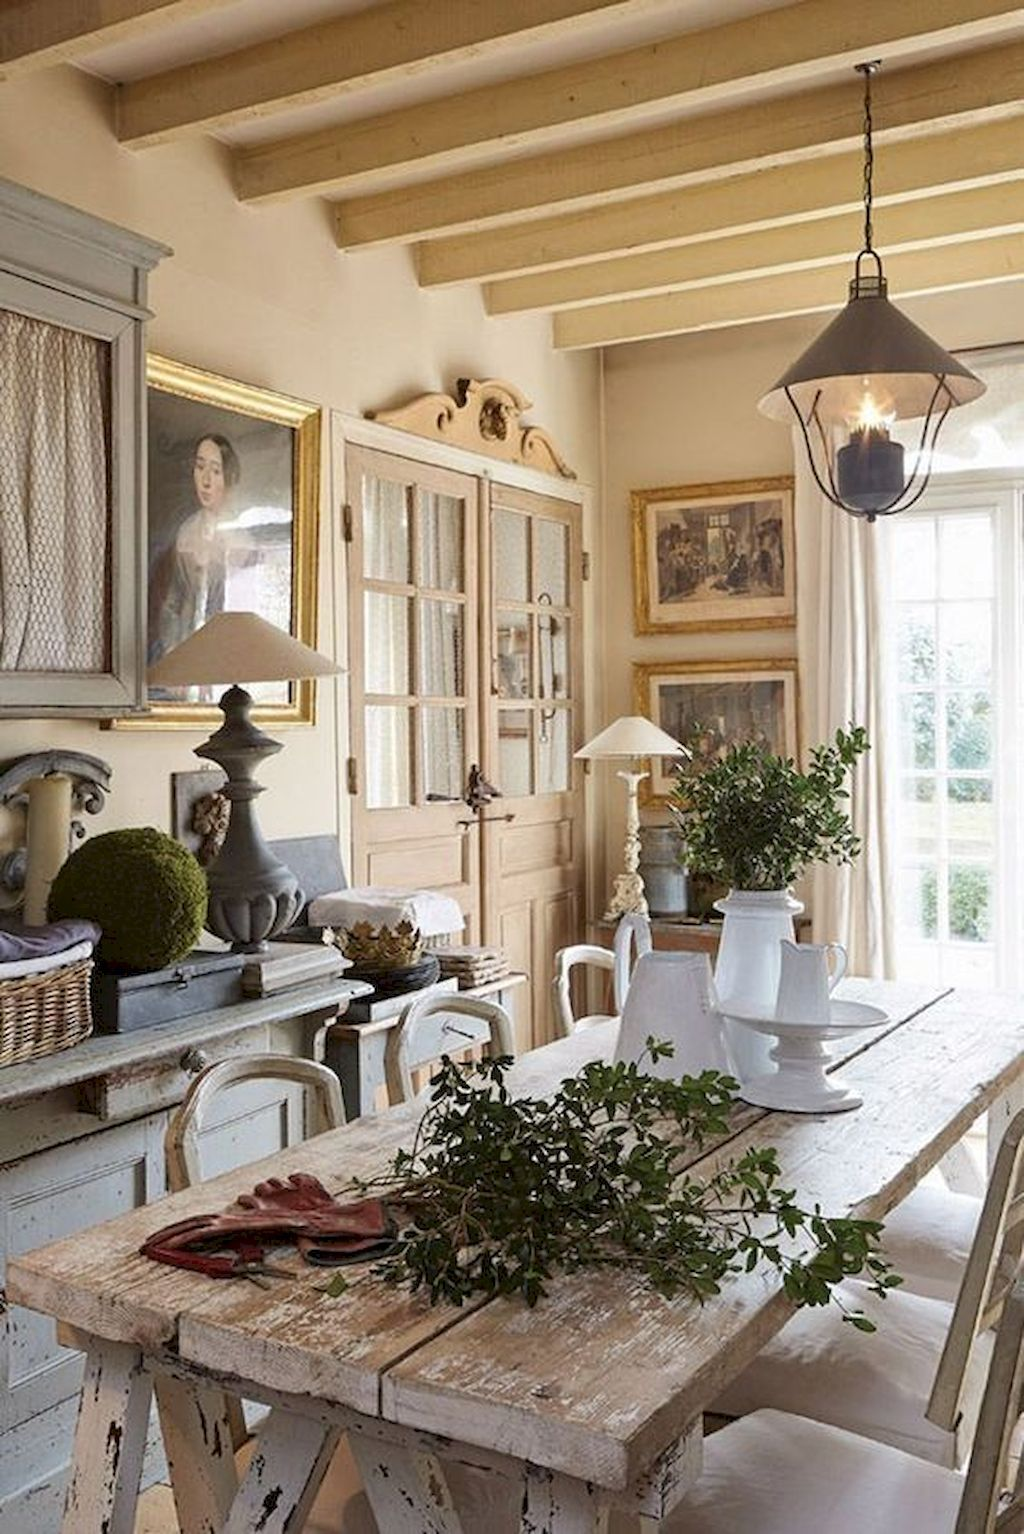 75 Fancy French Country Dining Room Decor Ideas French Country Dining Room Decor French Country Dining Room Living Room Decor Country